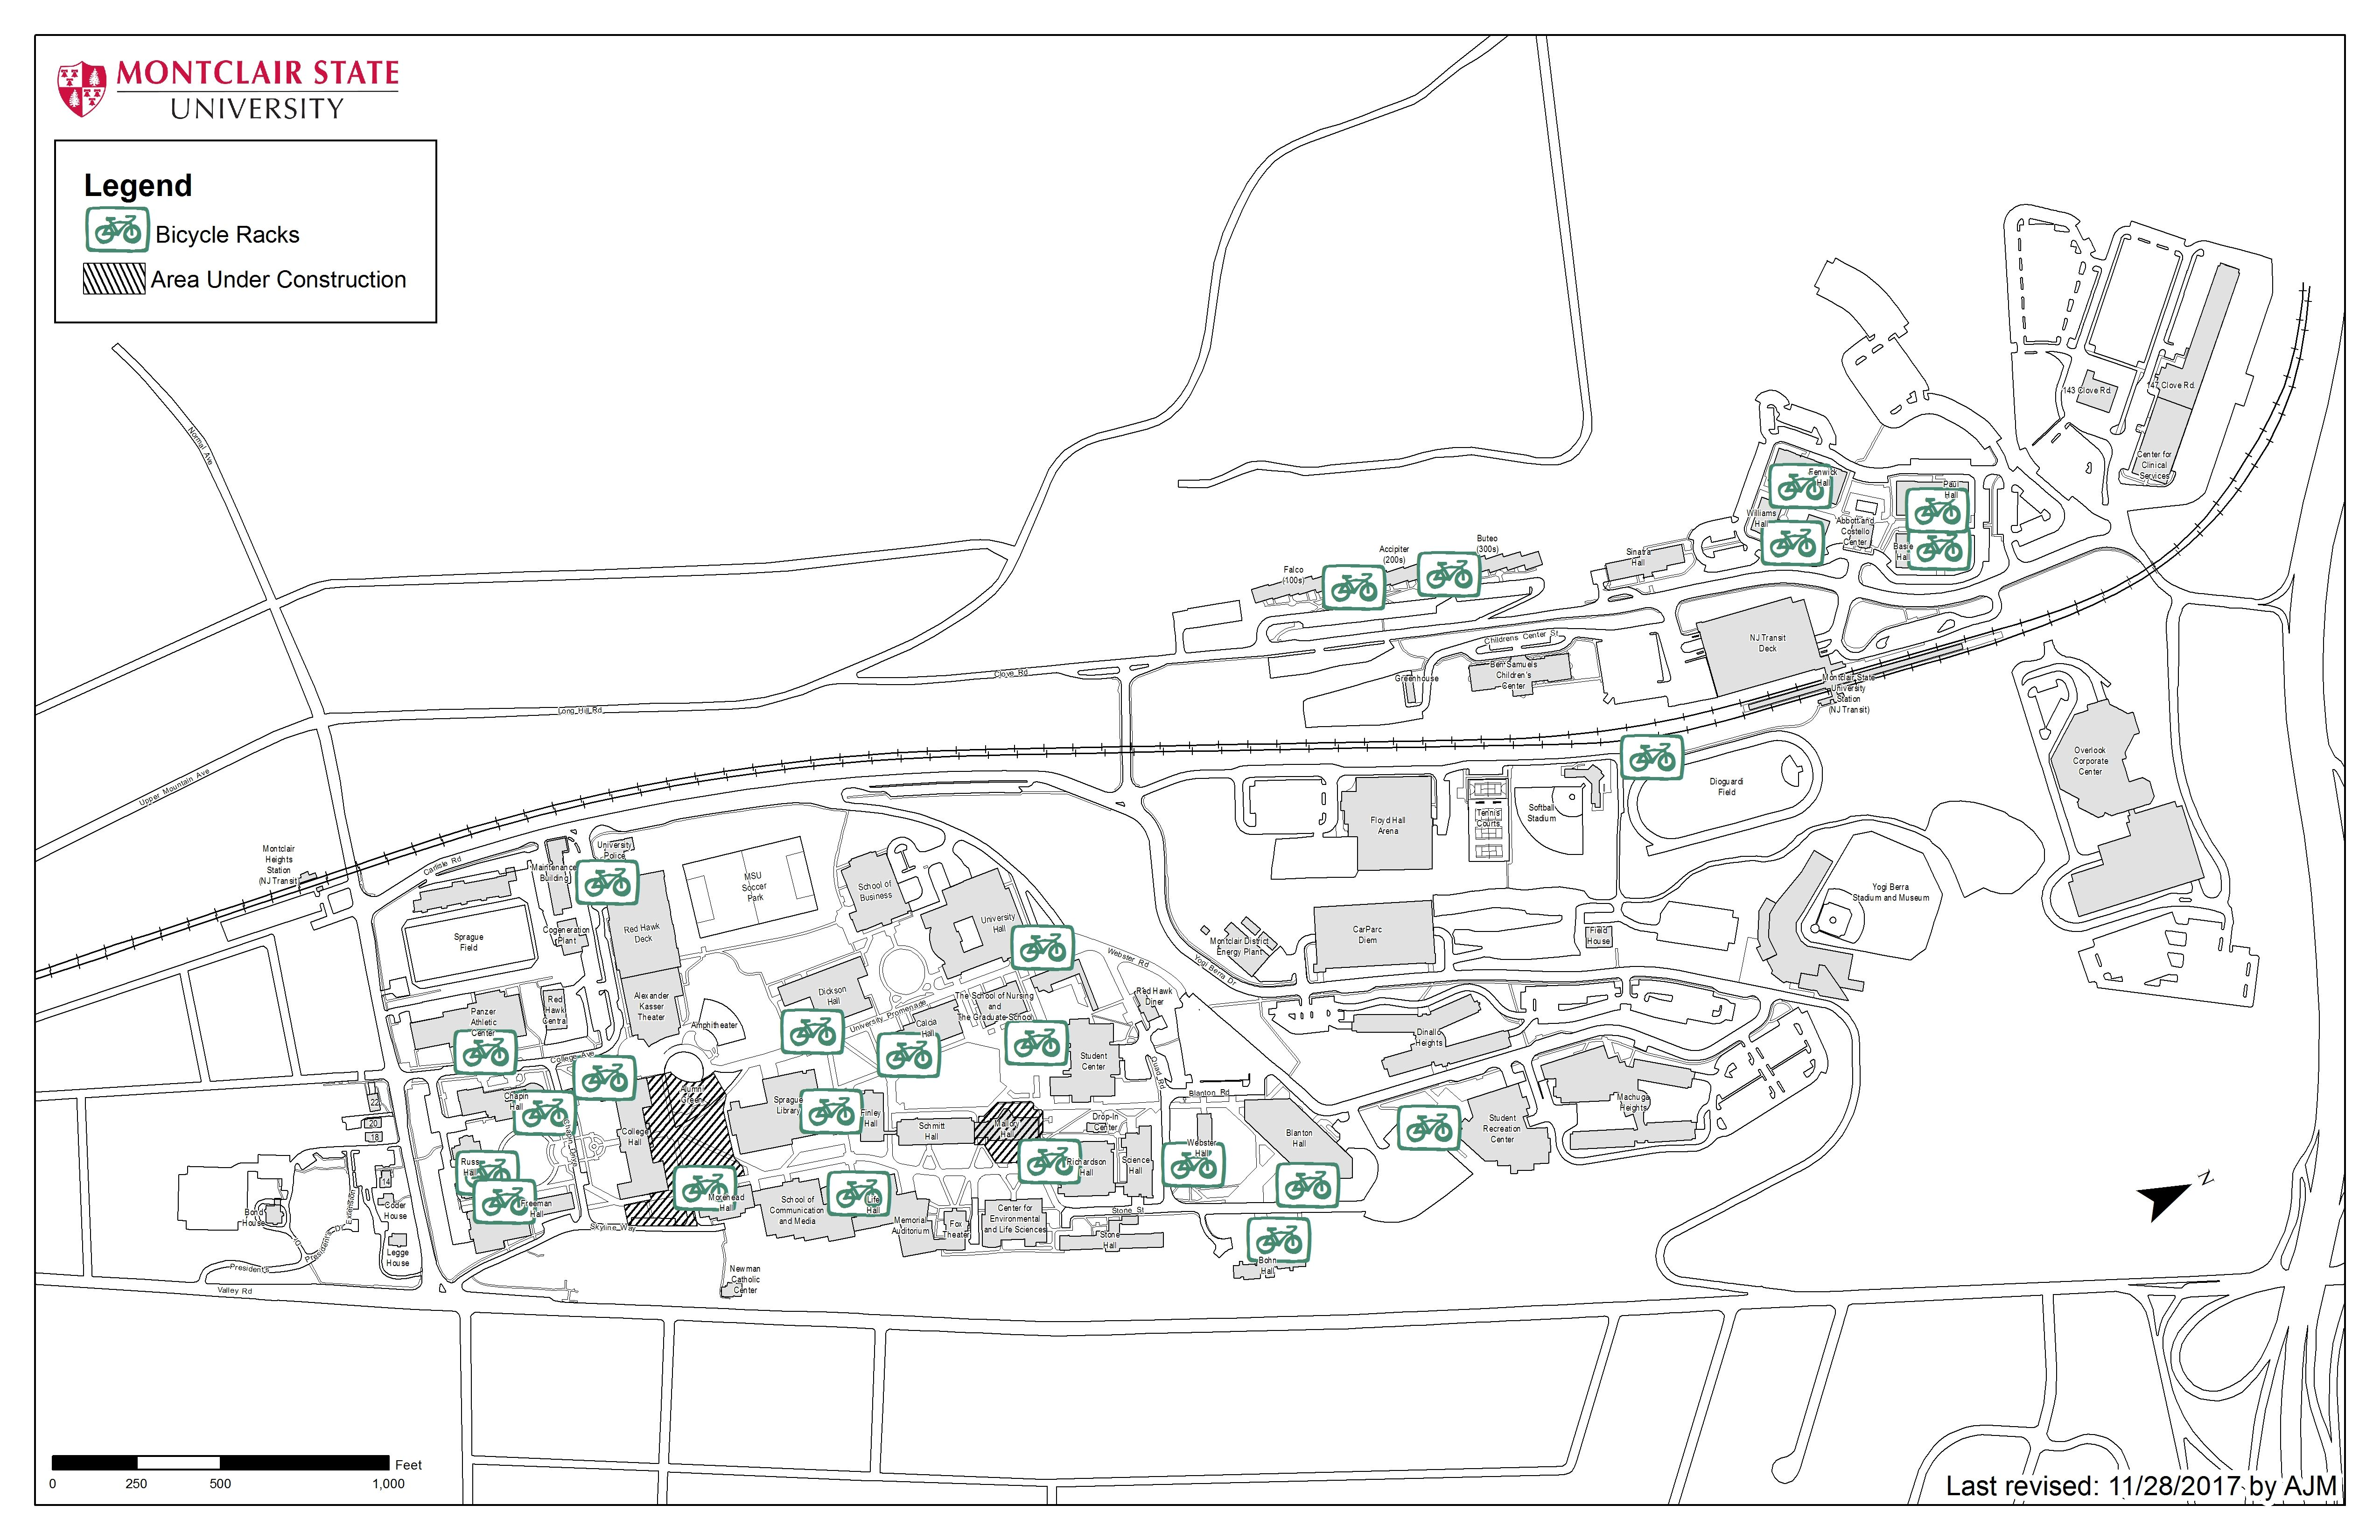 Campus Access & Maps